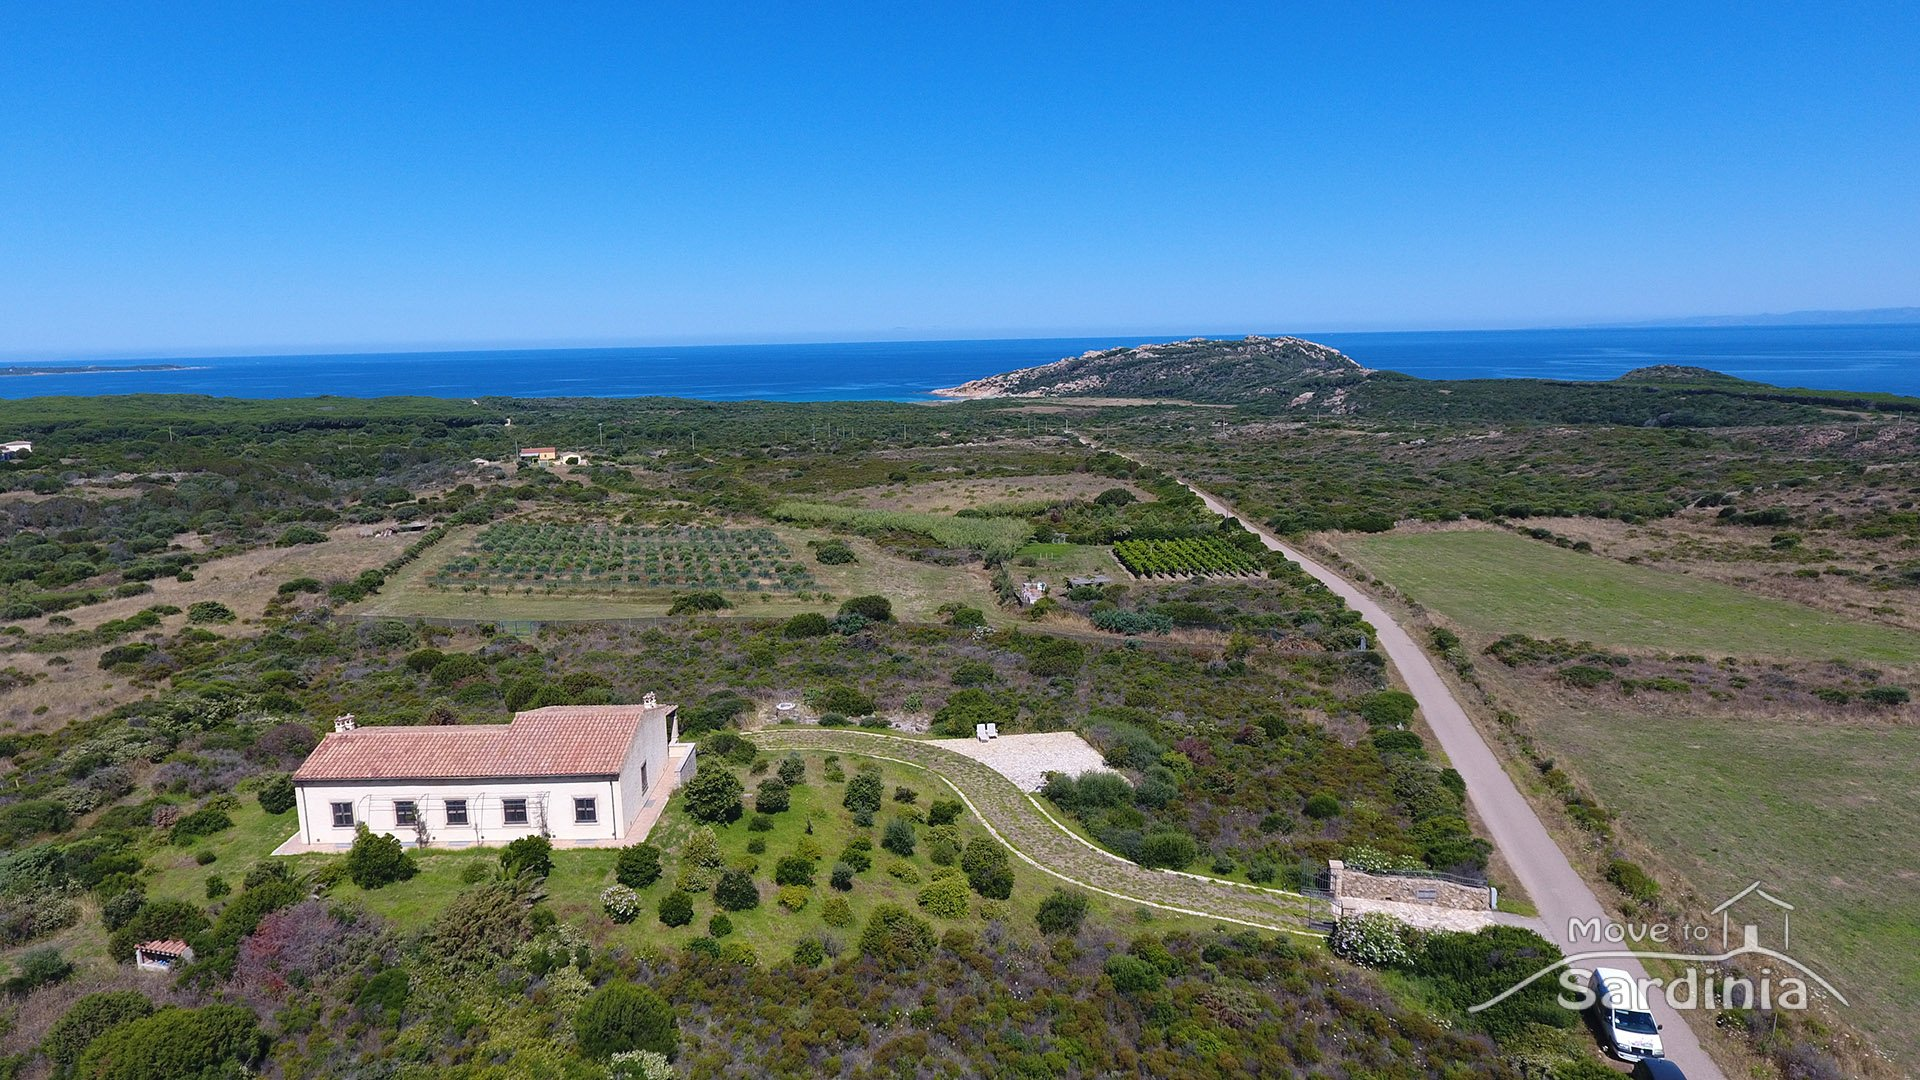 Exceptional house for sale in Sardinia, breathtaking sea view, few steps from the beach of Monti Russu in Aglientu